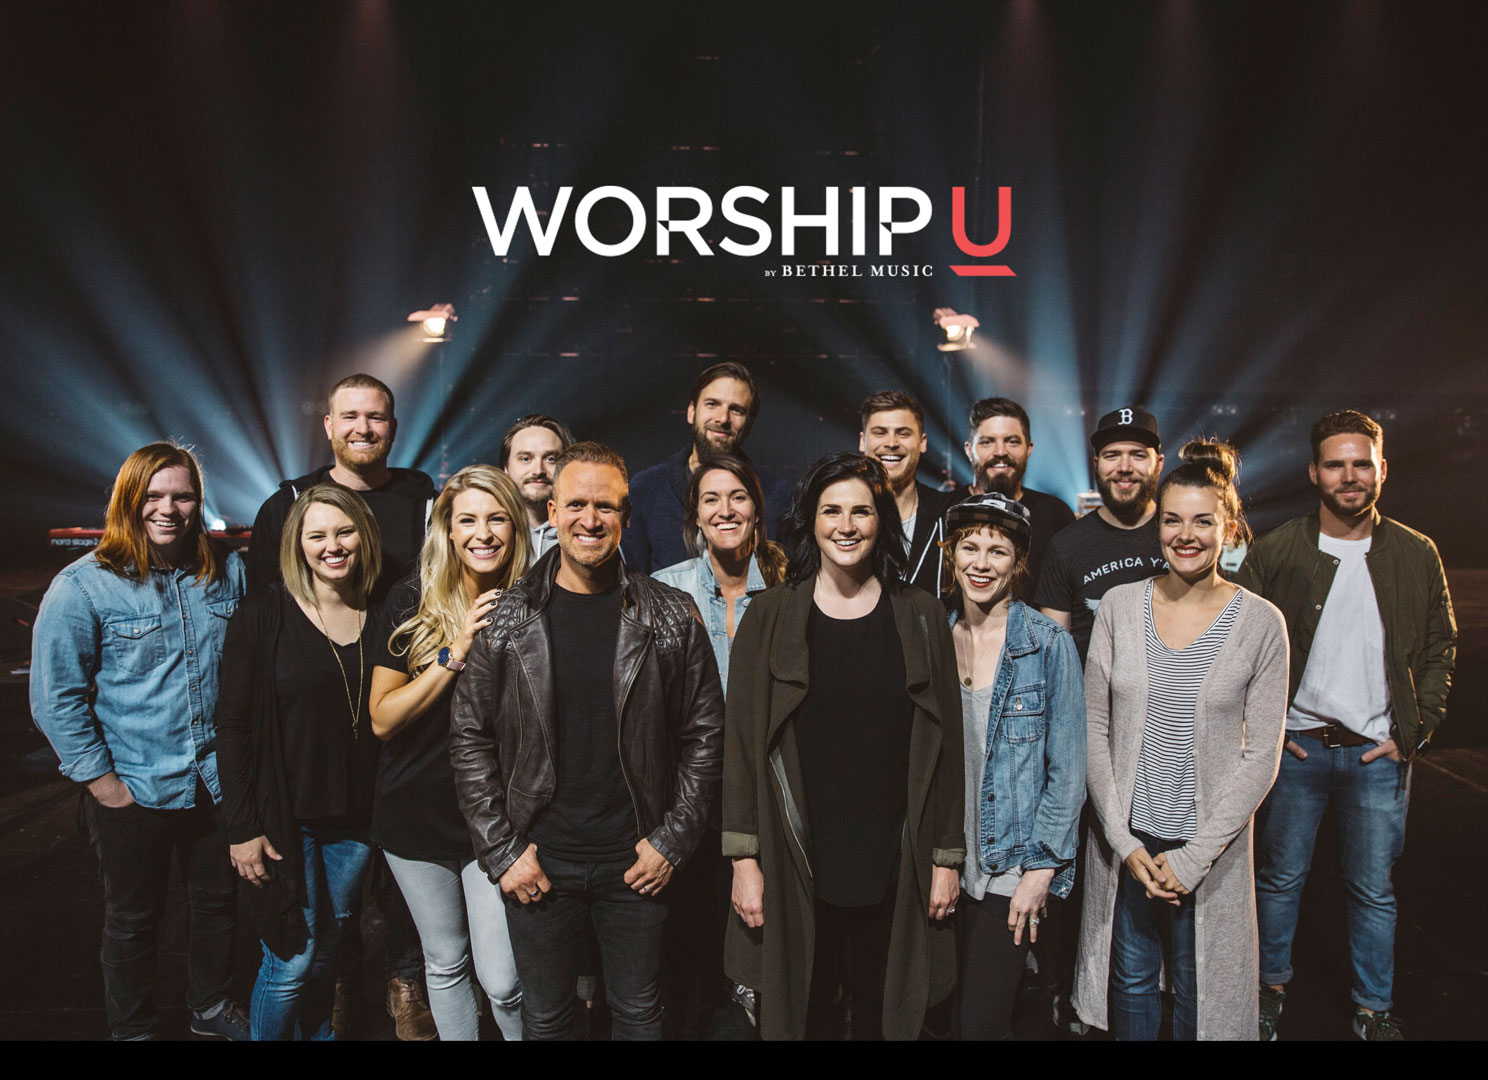 bethel-music-worshipu.jpg